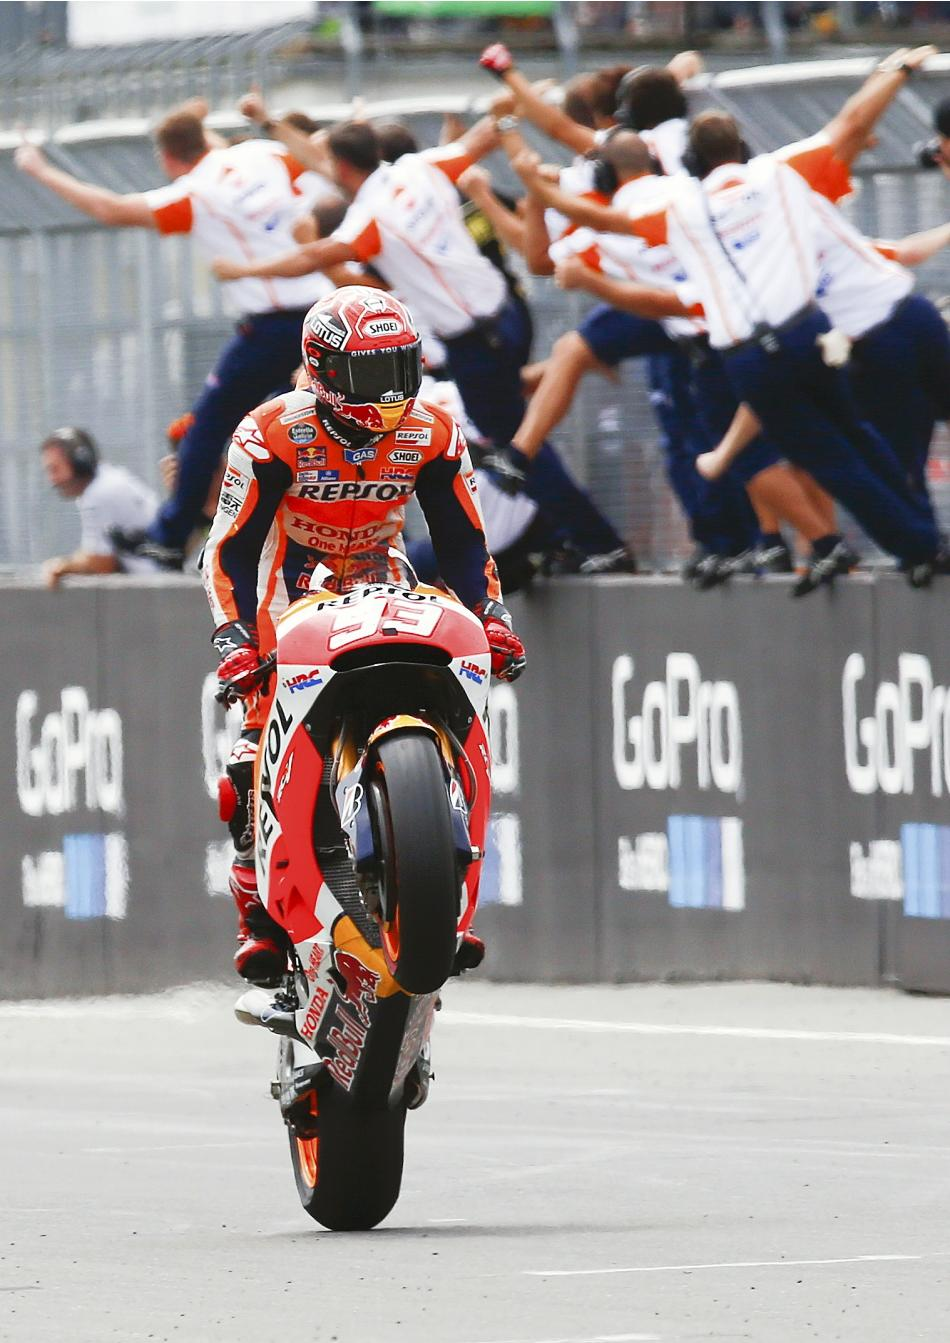 Repsol Honda Team MotoGP rider Marquez of Spain celebrates after winning the German Grand Prix MotoGP at the Sachsenring circuit in the eastern town of Hohenstein-Ernstthal